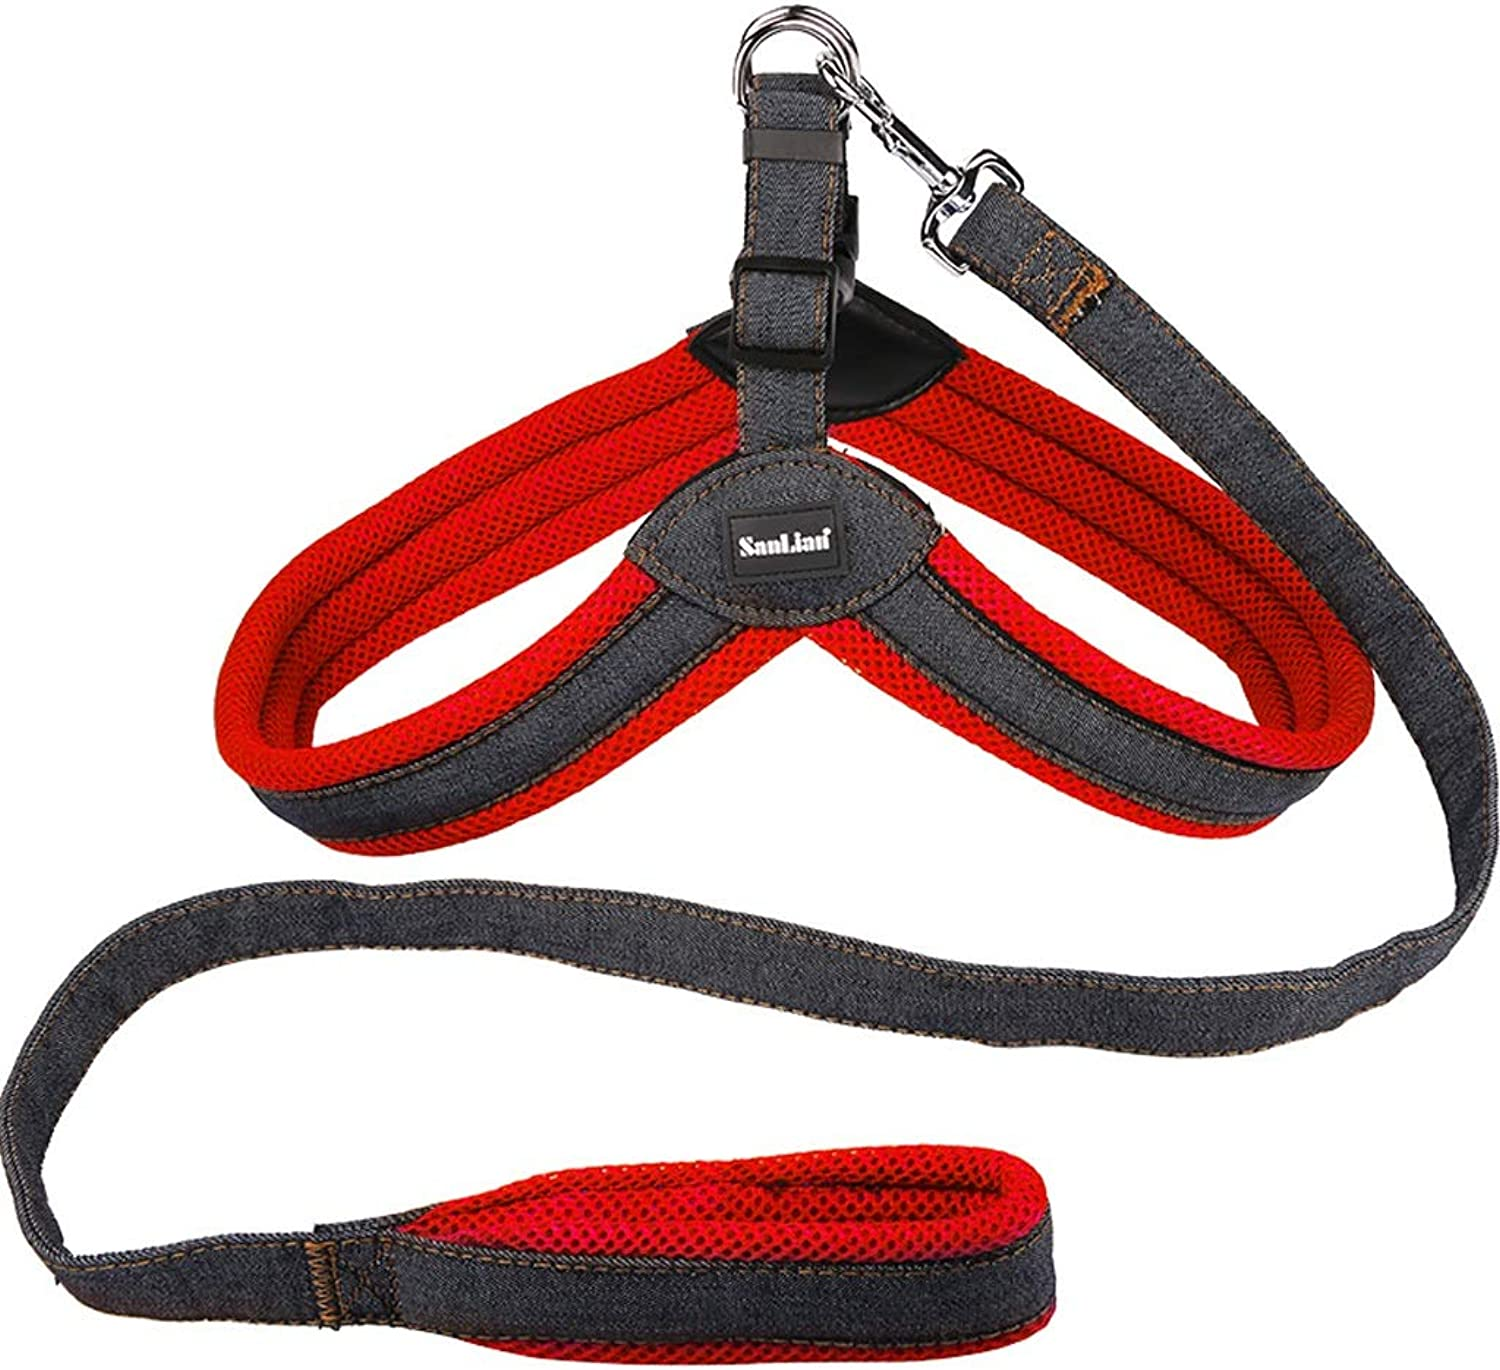 Pet Leash Dog Vest Dog Chain, Mesh Breathable Can Not Prevent Dogs Running, Red bluee KGMYGS (color   Red, Size   L)